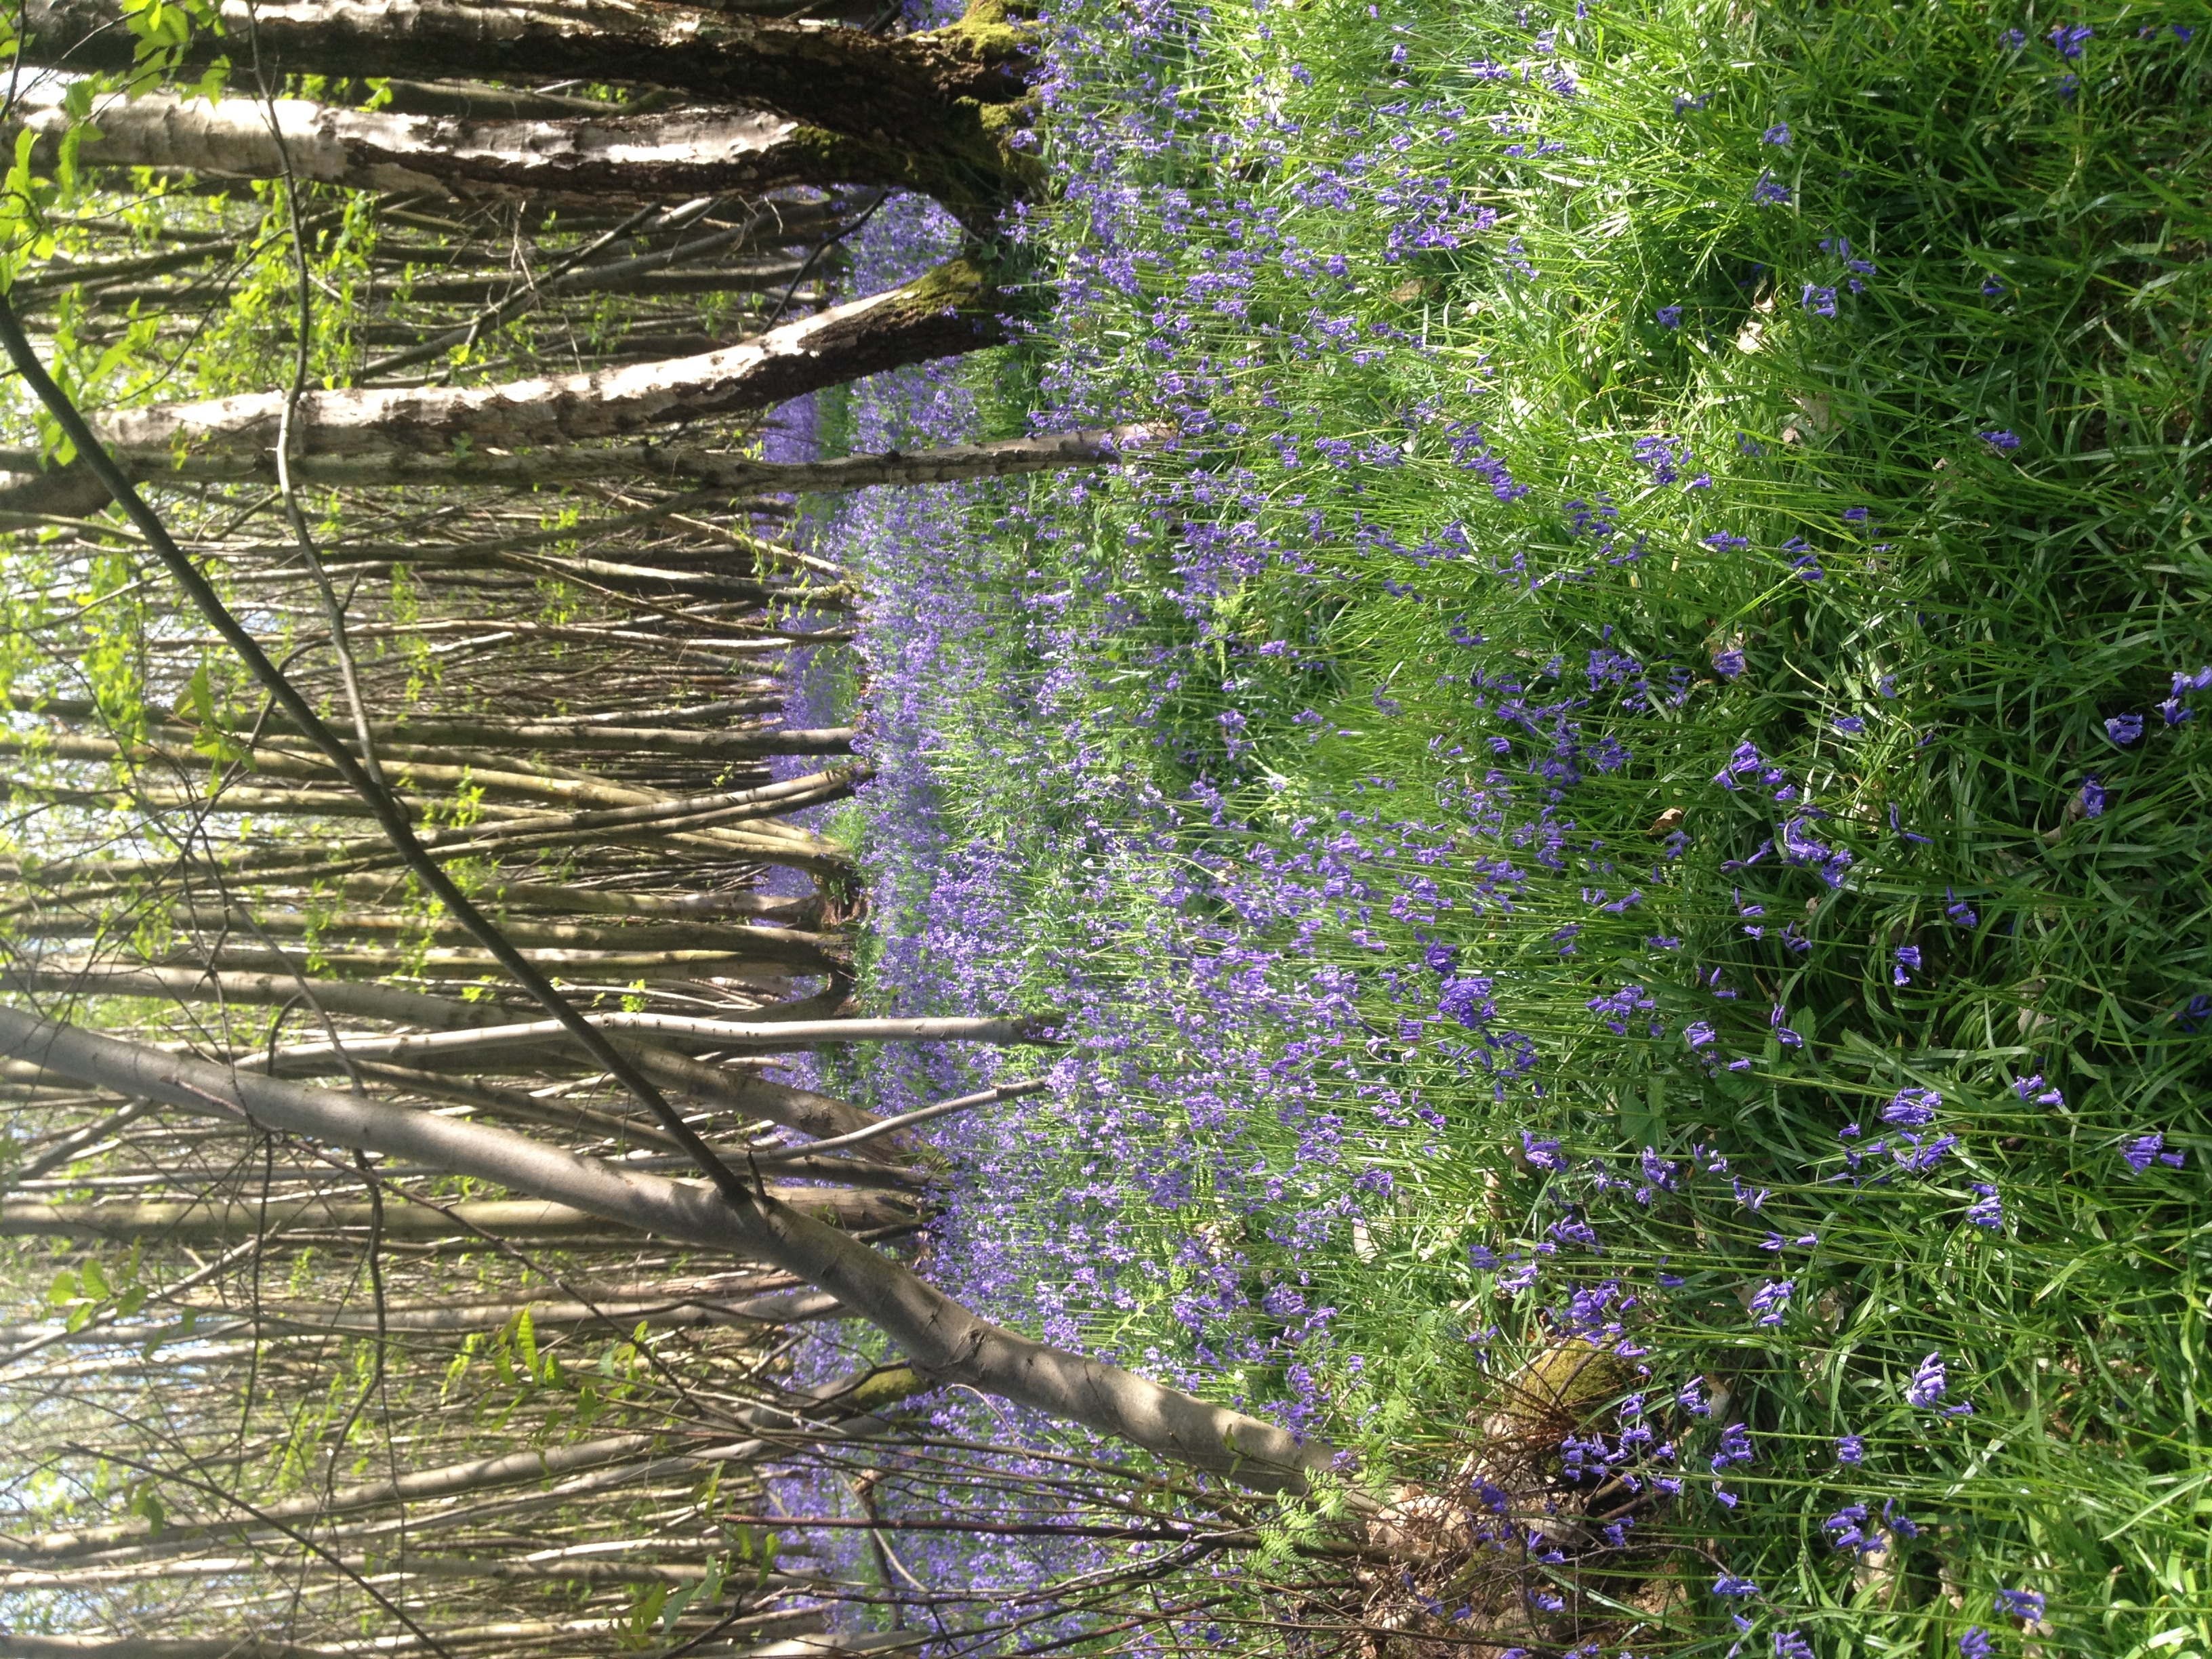 Bluebells in Kings Wood, Kent | Seeds and Stitches blog